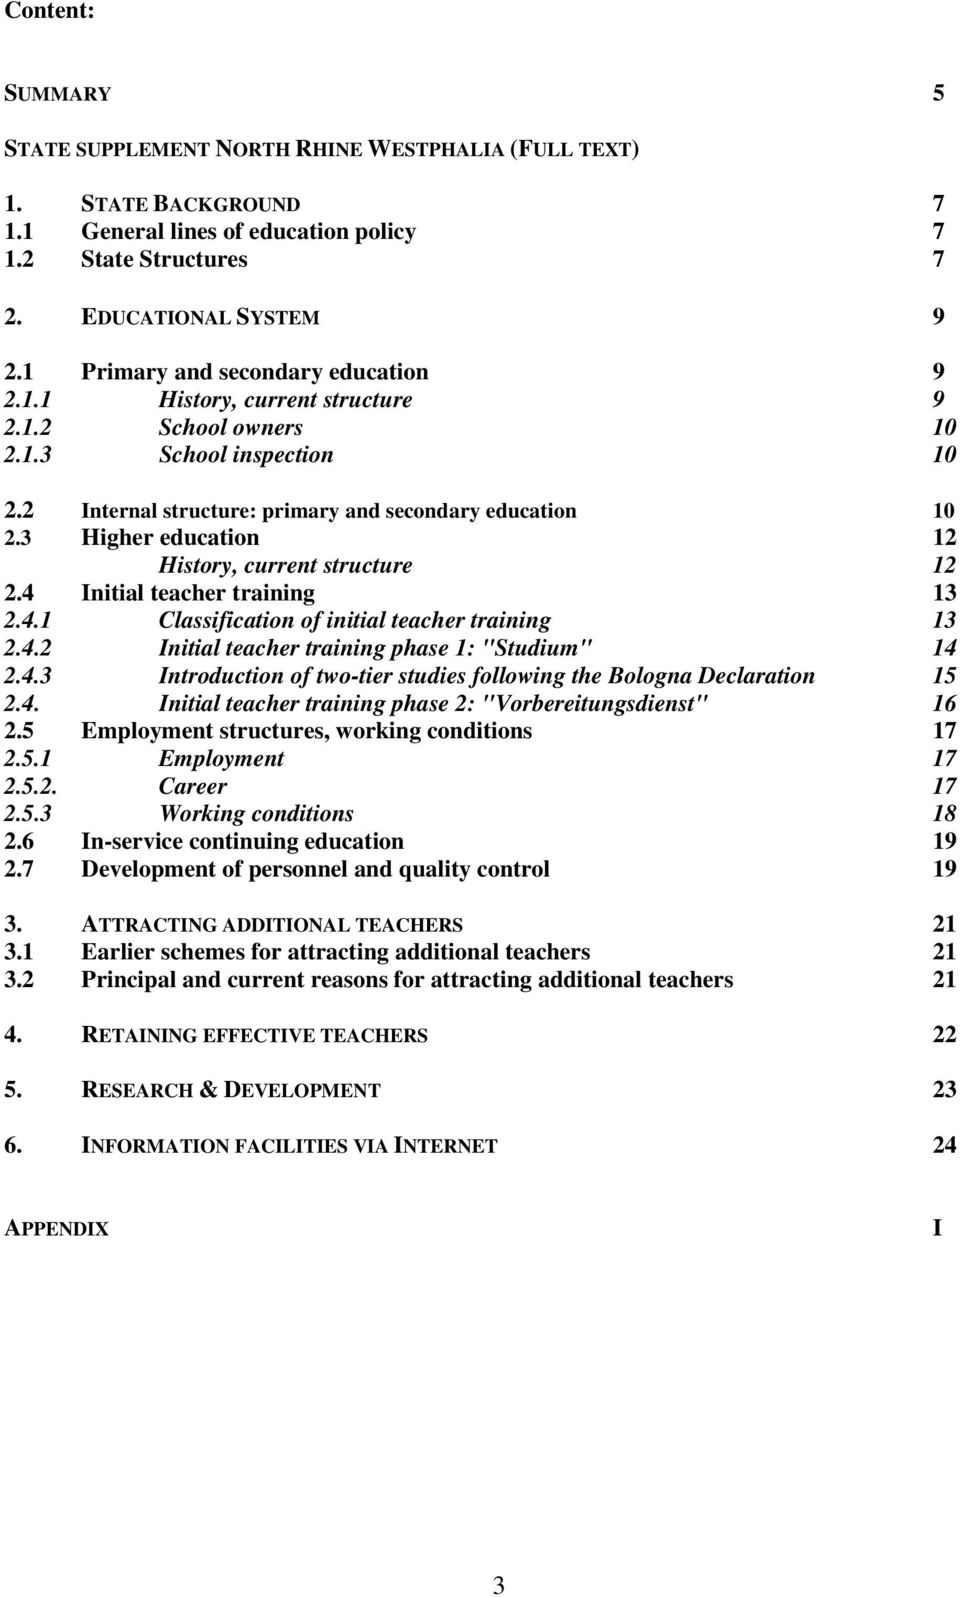 "3 Higher education 12 History, current structure 12 2.4 Initial teacher training 13 2.4.1 Classification of initial teacher training 13 2.4.2 Initial teacher training phase 1: ""Studium"" 14 2.4.3 Introduction of two-tier studies following the Bologna Declaration 15 2."